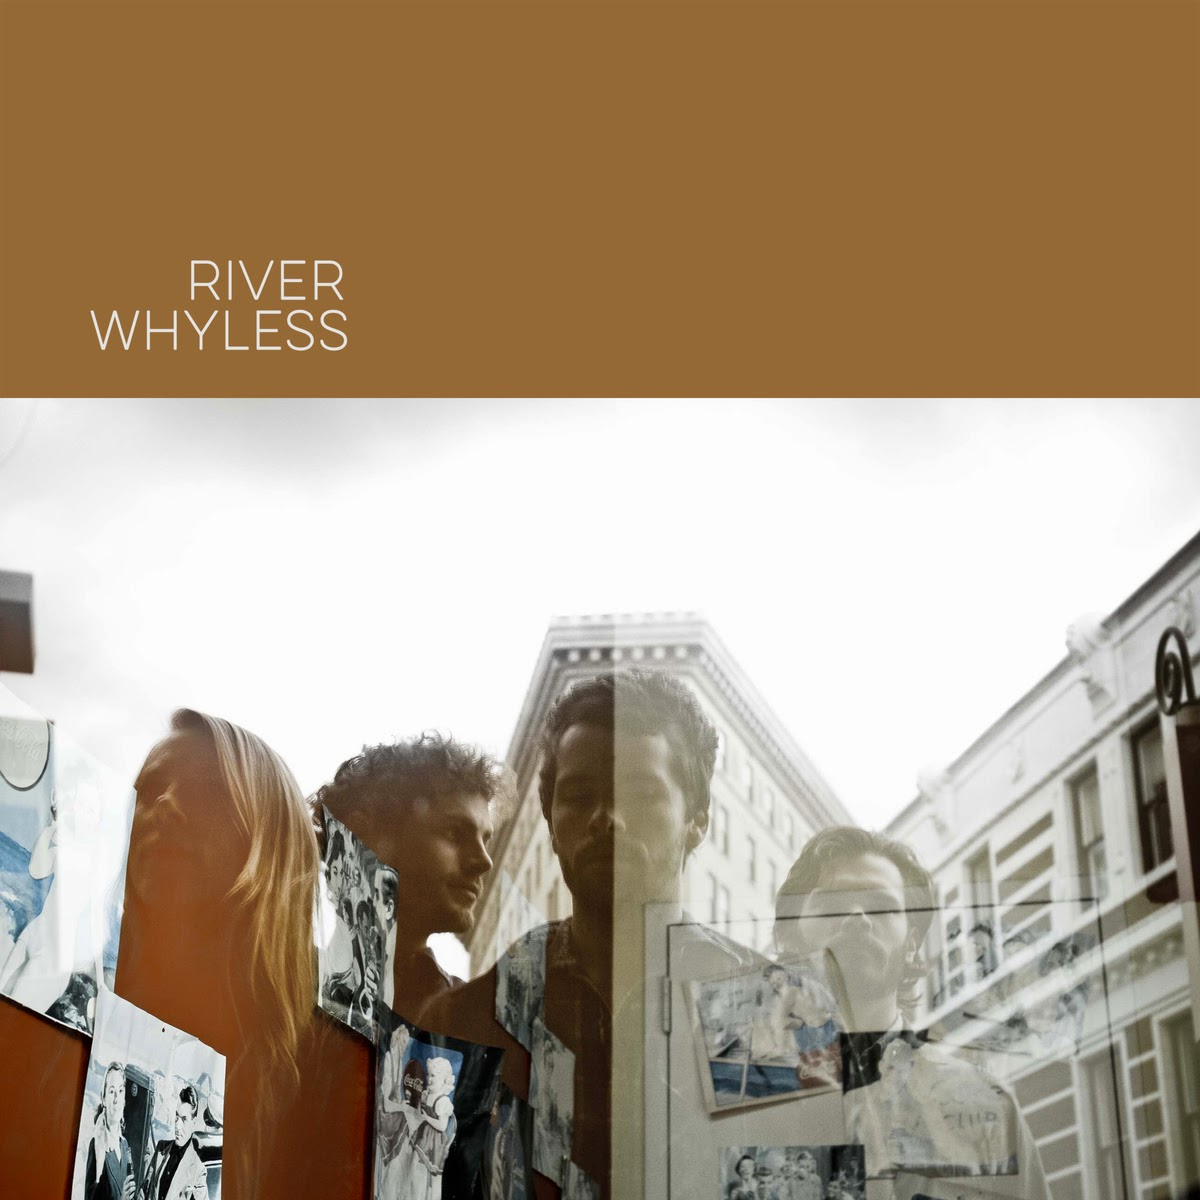 http://www.d4am.net/2015/02/river-whyless-river-whyless.html